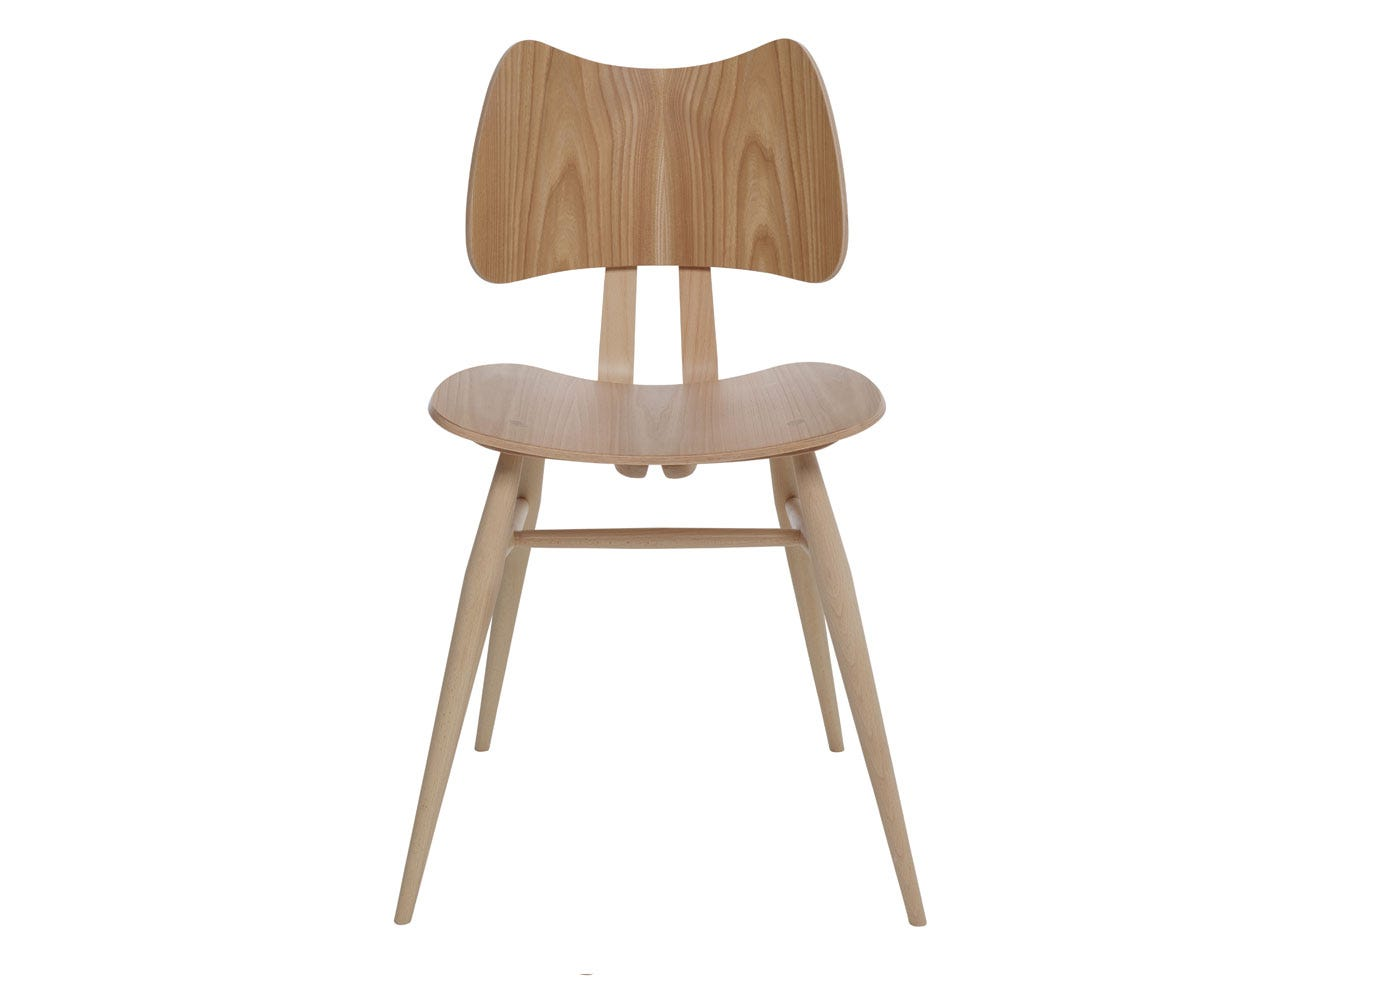 As shown: Originals Butterfly Chair Beech and Elm - Front Profile.